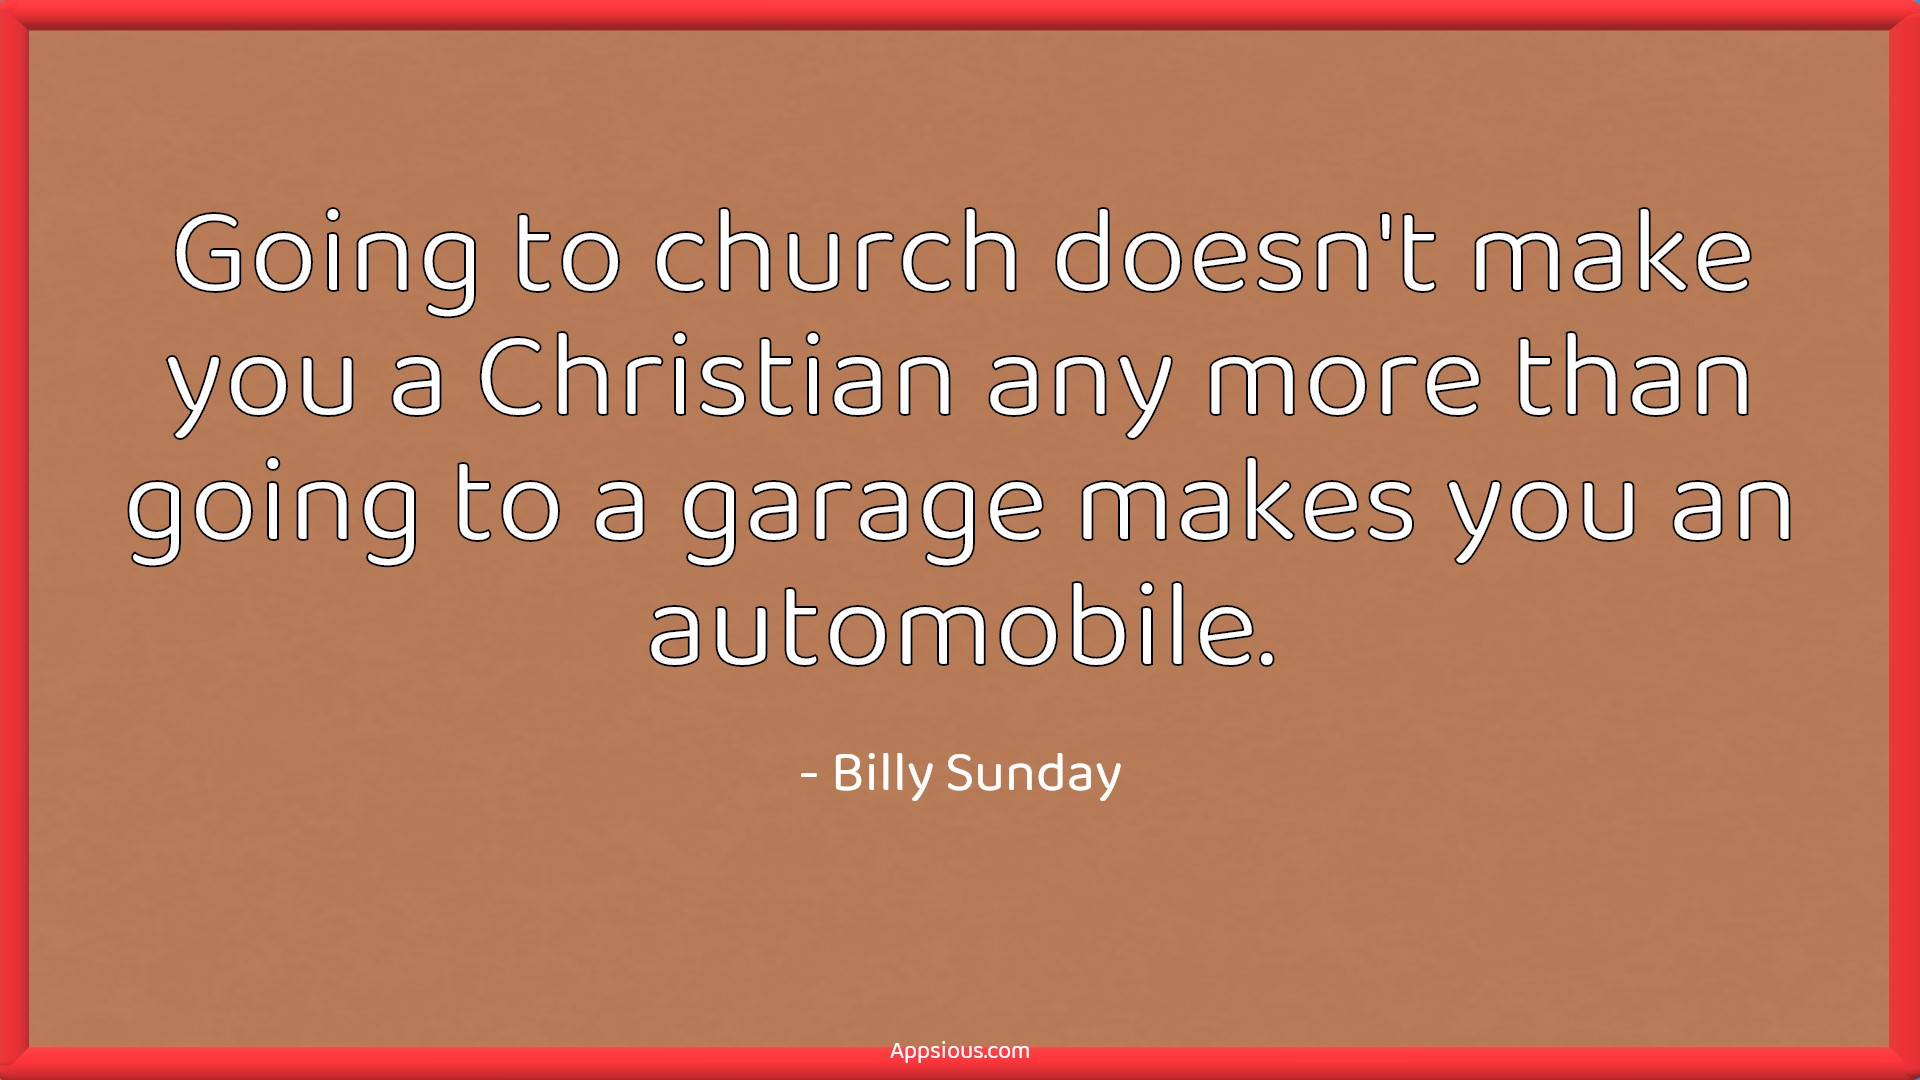 Going to church doesn't make you a Christian any more than going to a garage makes you an automobile.